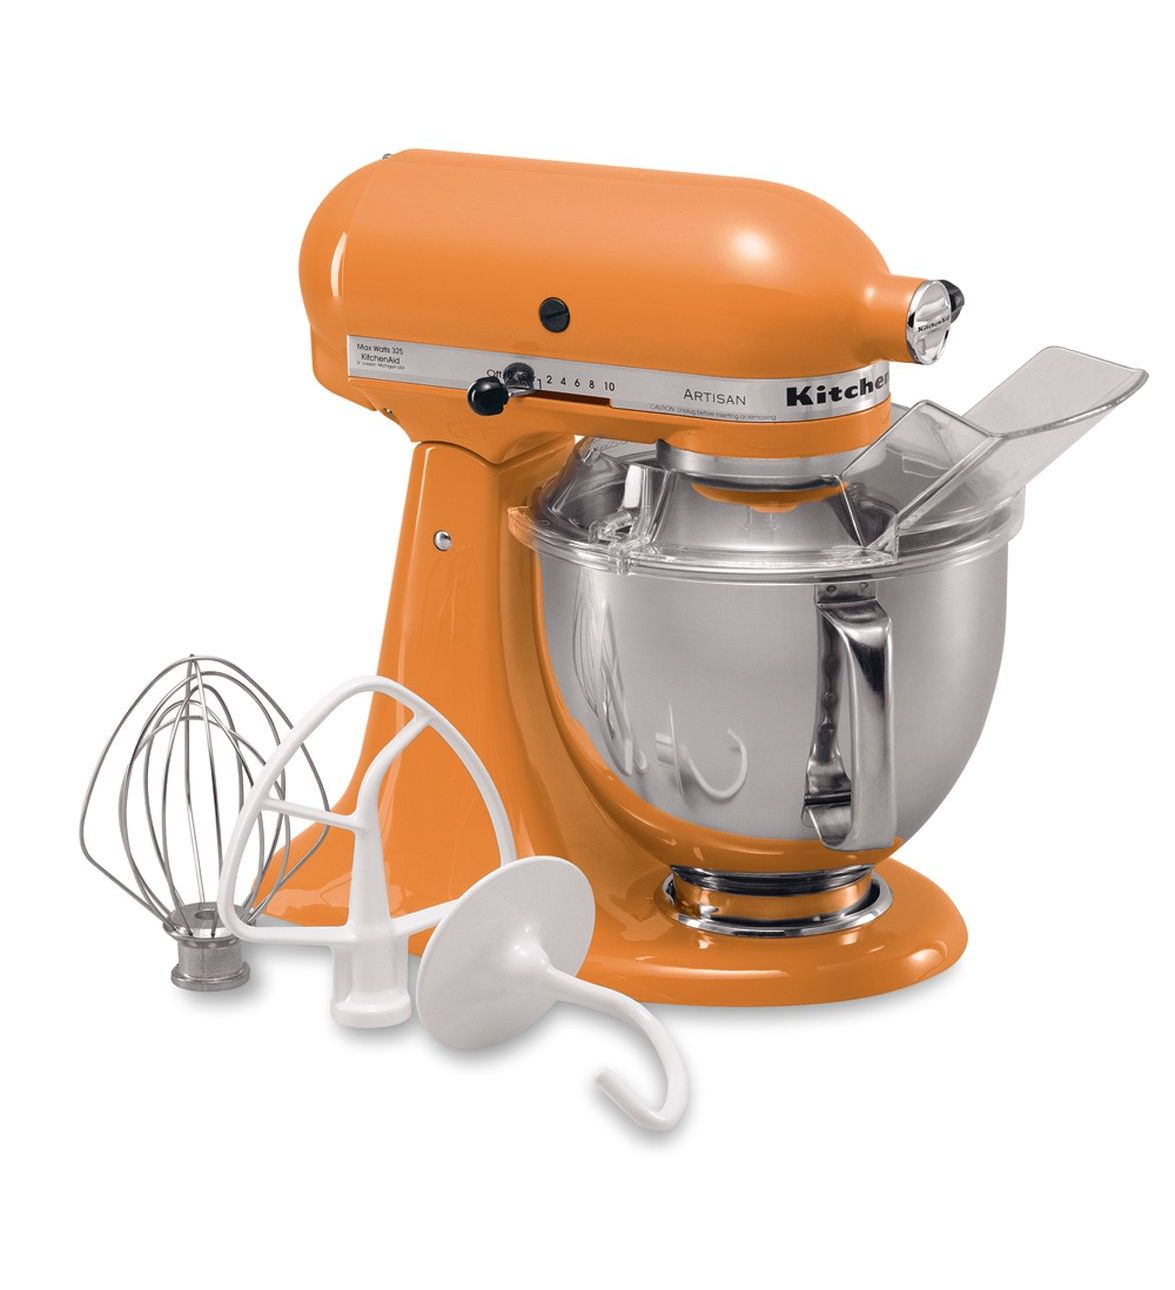 KitchenAid® Refurbished Artisan® Series 5 Quart Tilt-Head Stand Mixer, RRK150 Tangerine